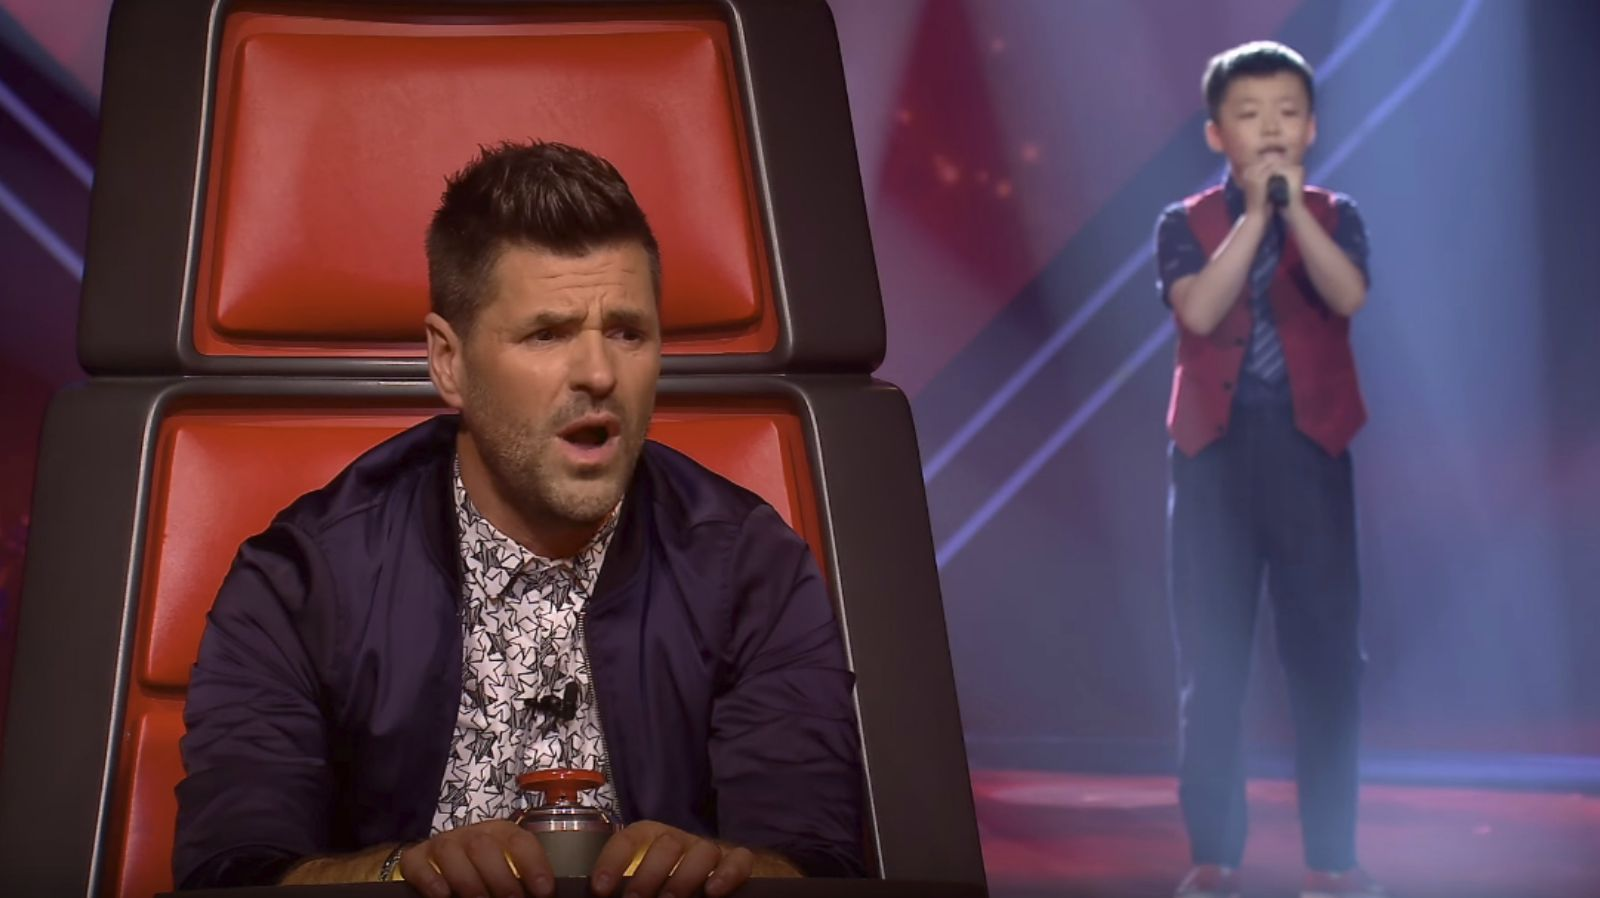 12-Year-Old Jeffrey Li Performs on French Version of 'The Voice' and Leaves Judges Speechless